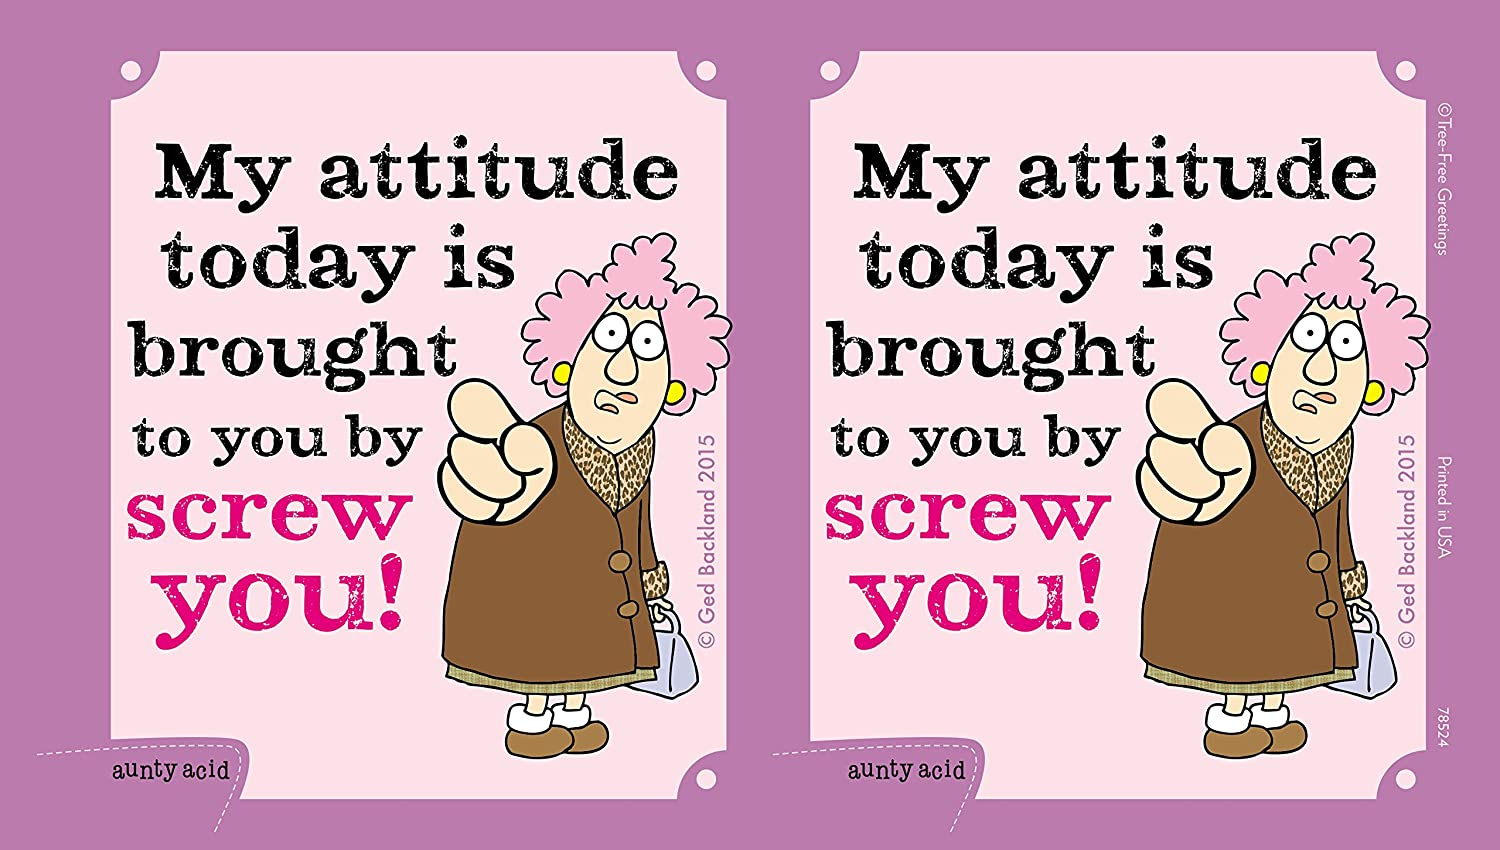 Tree-Free Greetings 16-Ounce Sip N Go Stainless Lined Travel Mug SG78524 Aunty Acid Attitude Today